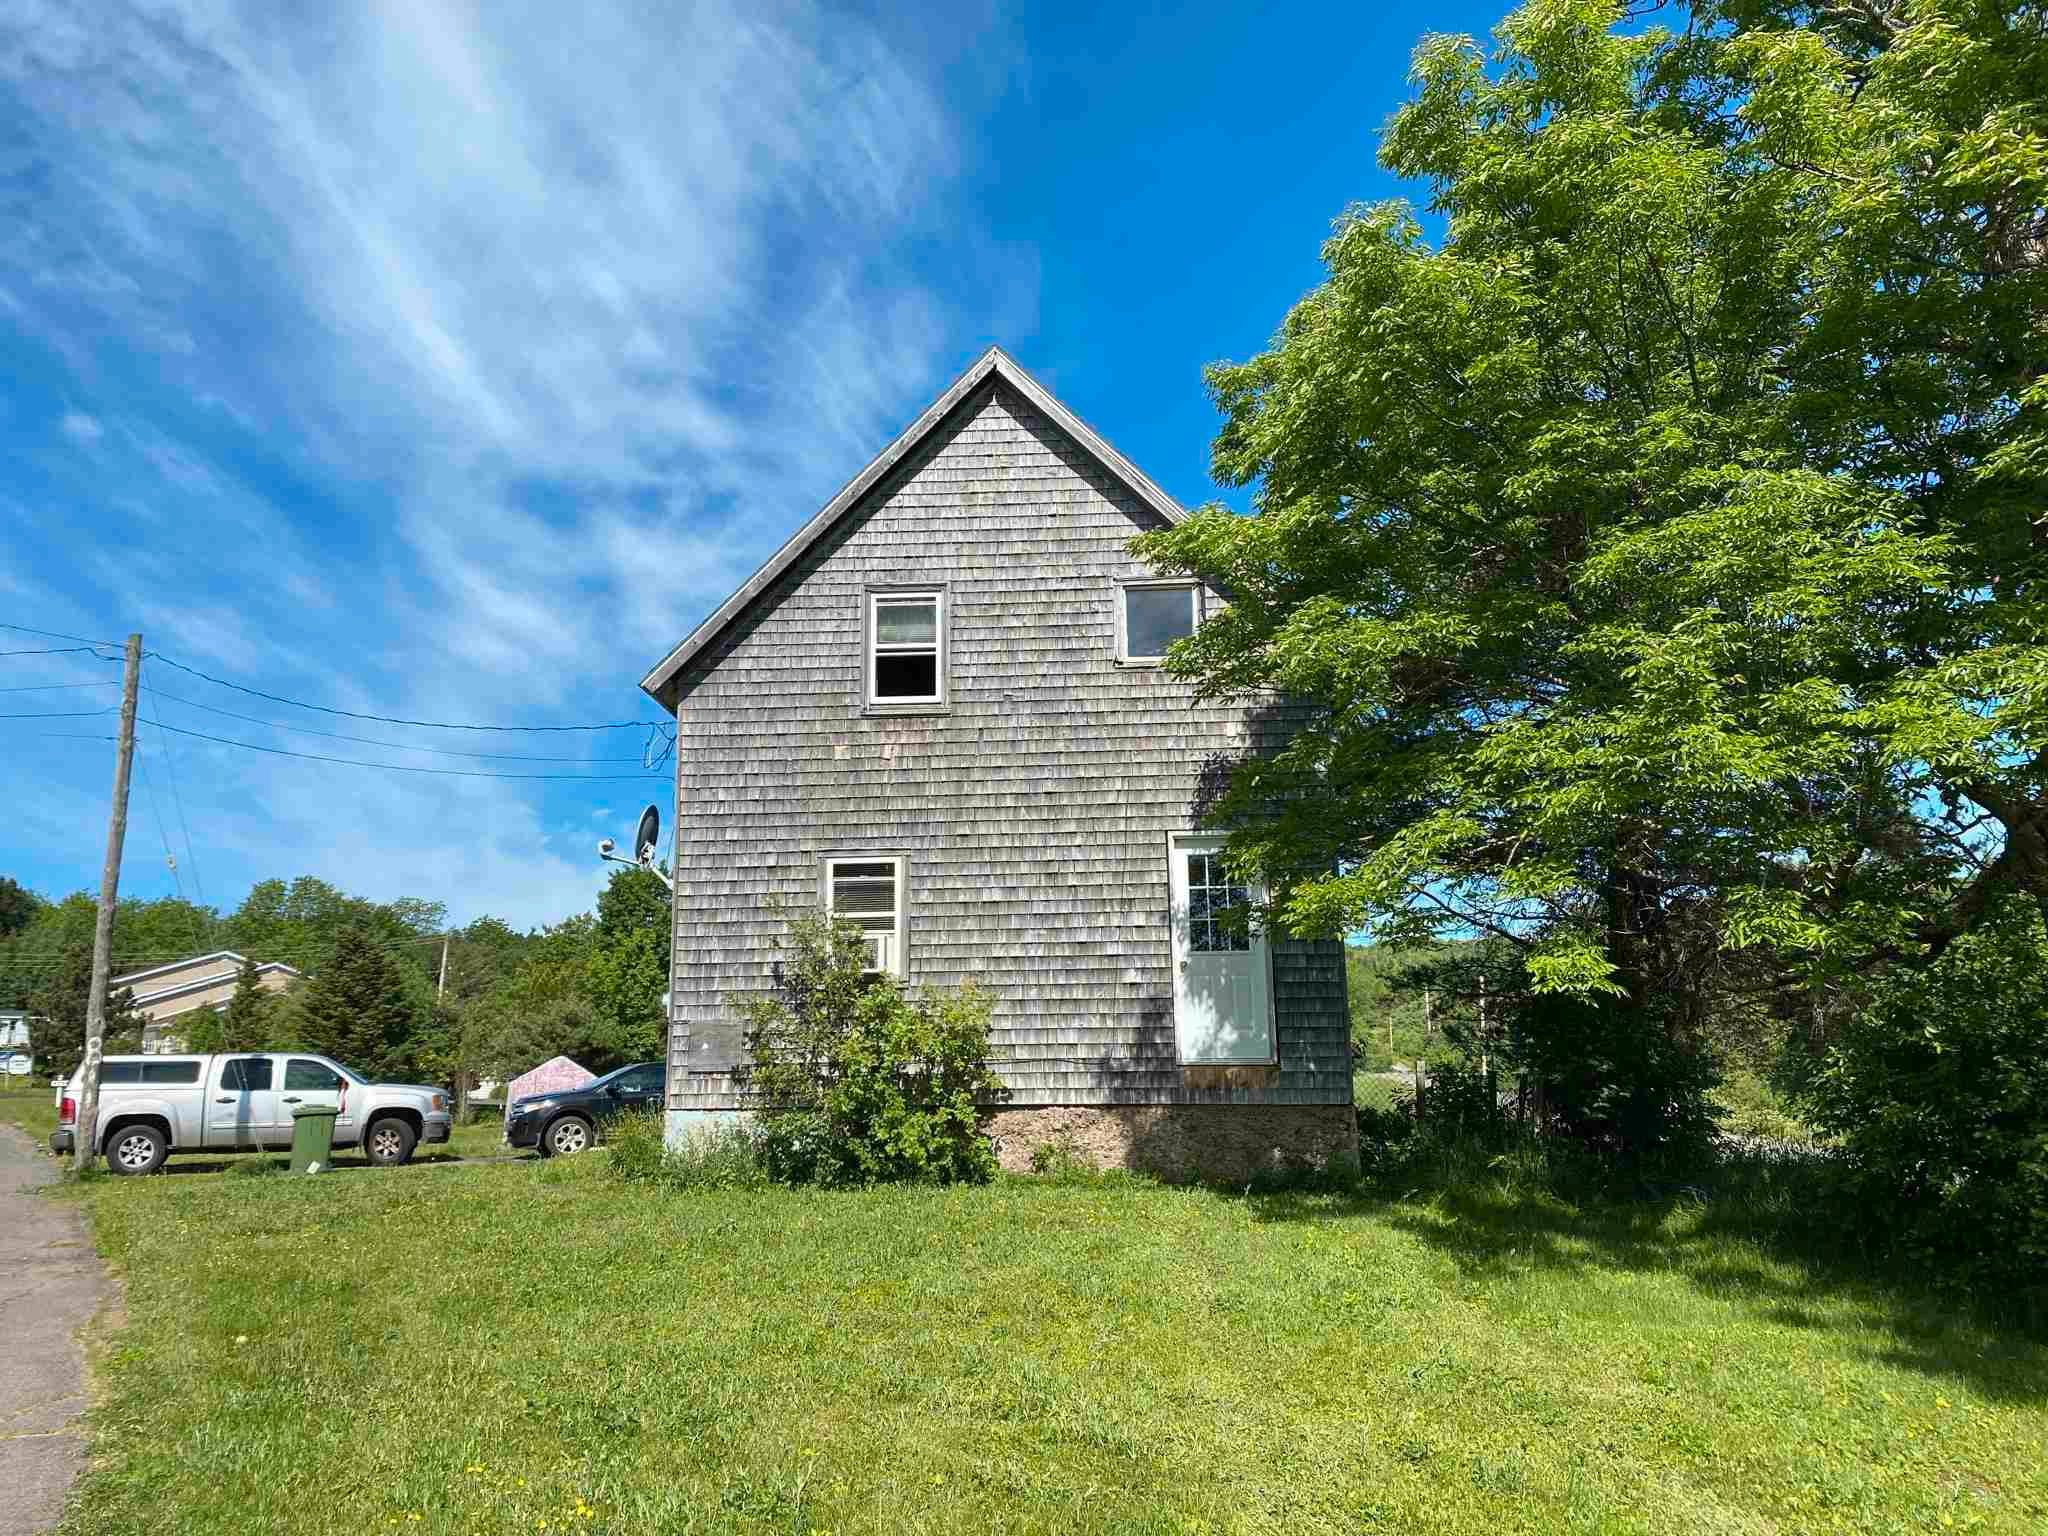 Main Photo: 811 Marshdale Road in Hopewell: 108-Rural Pictou County Residential for sale (Northern Region)  : MLS®# 202114793